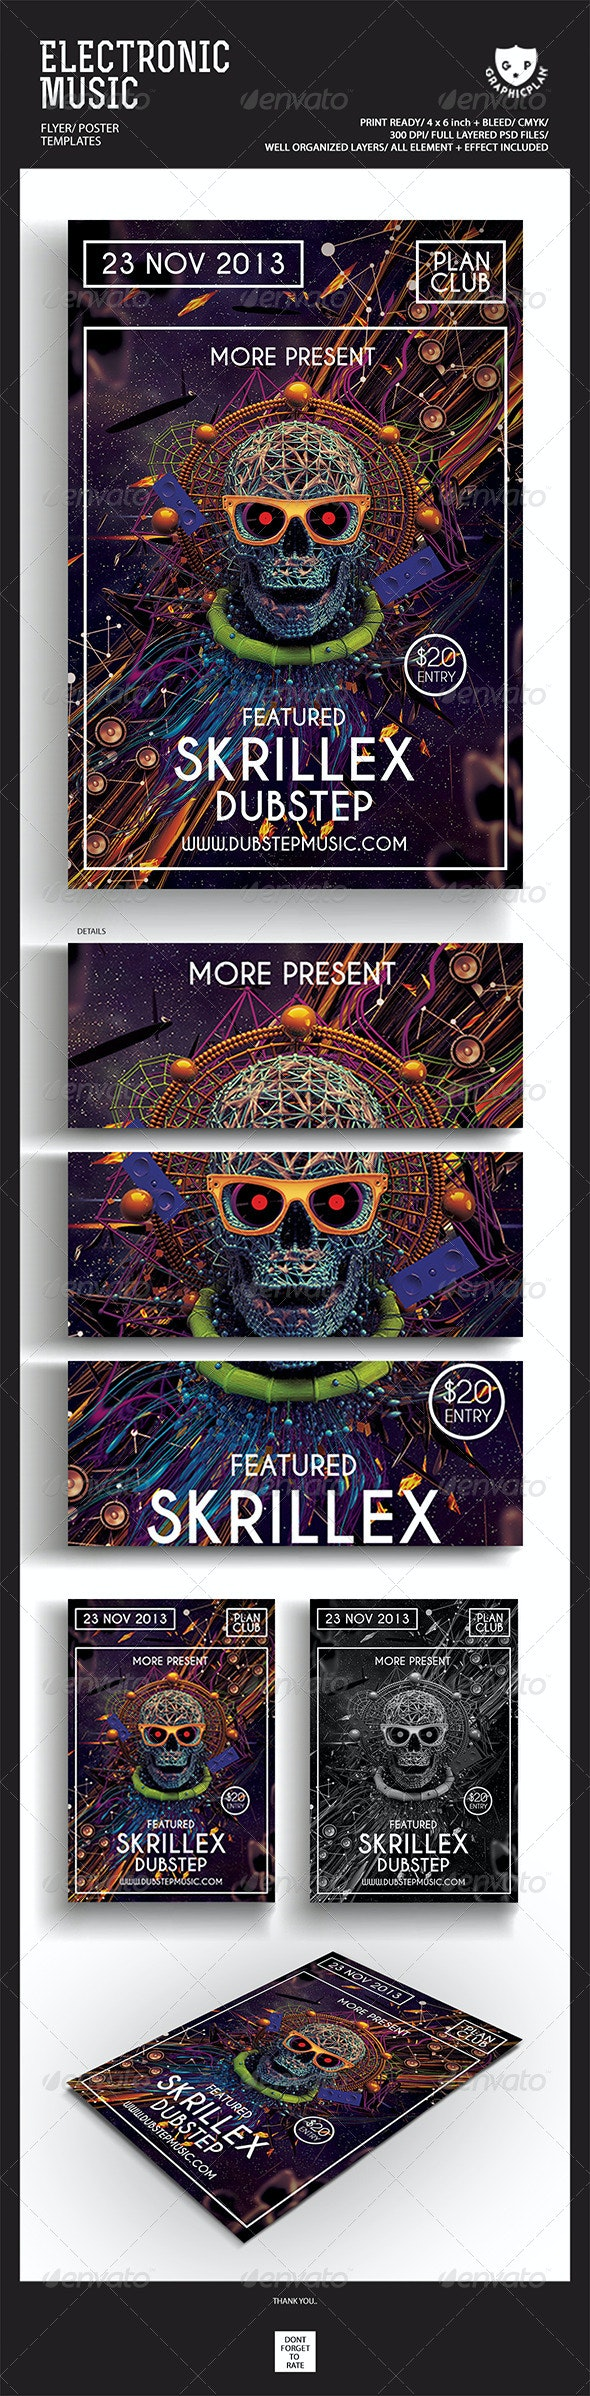 Electronic Music Flyer/Poster - Events Flyers